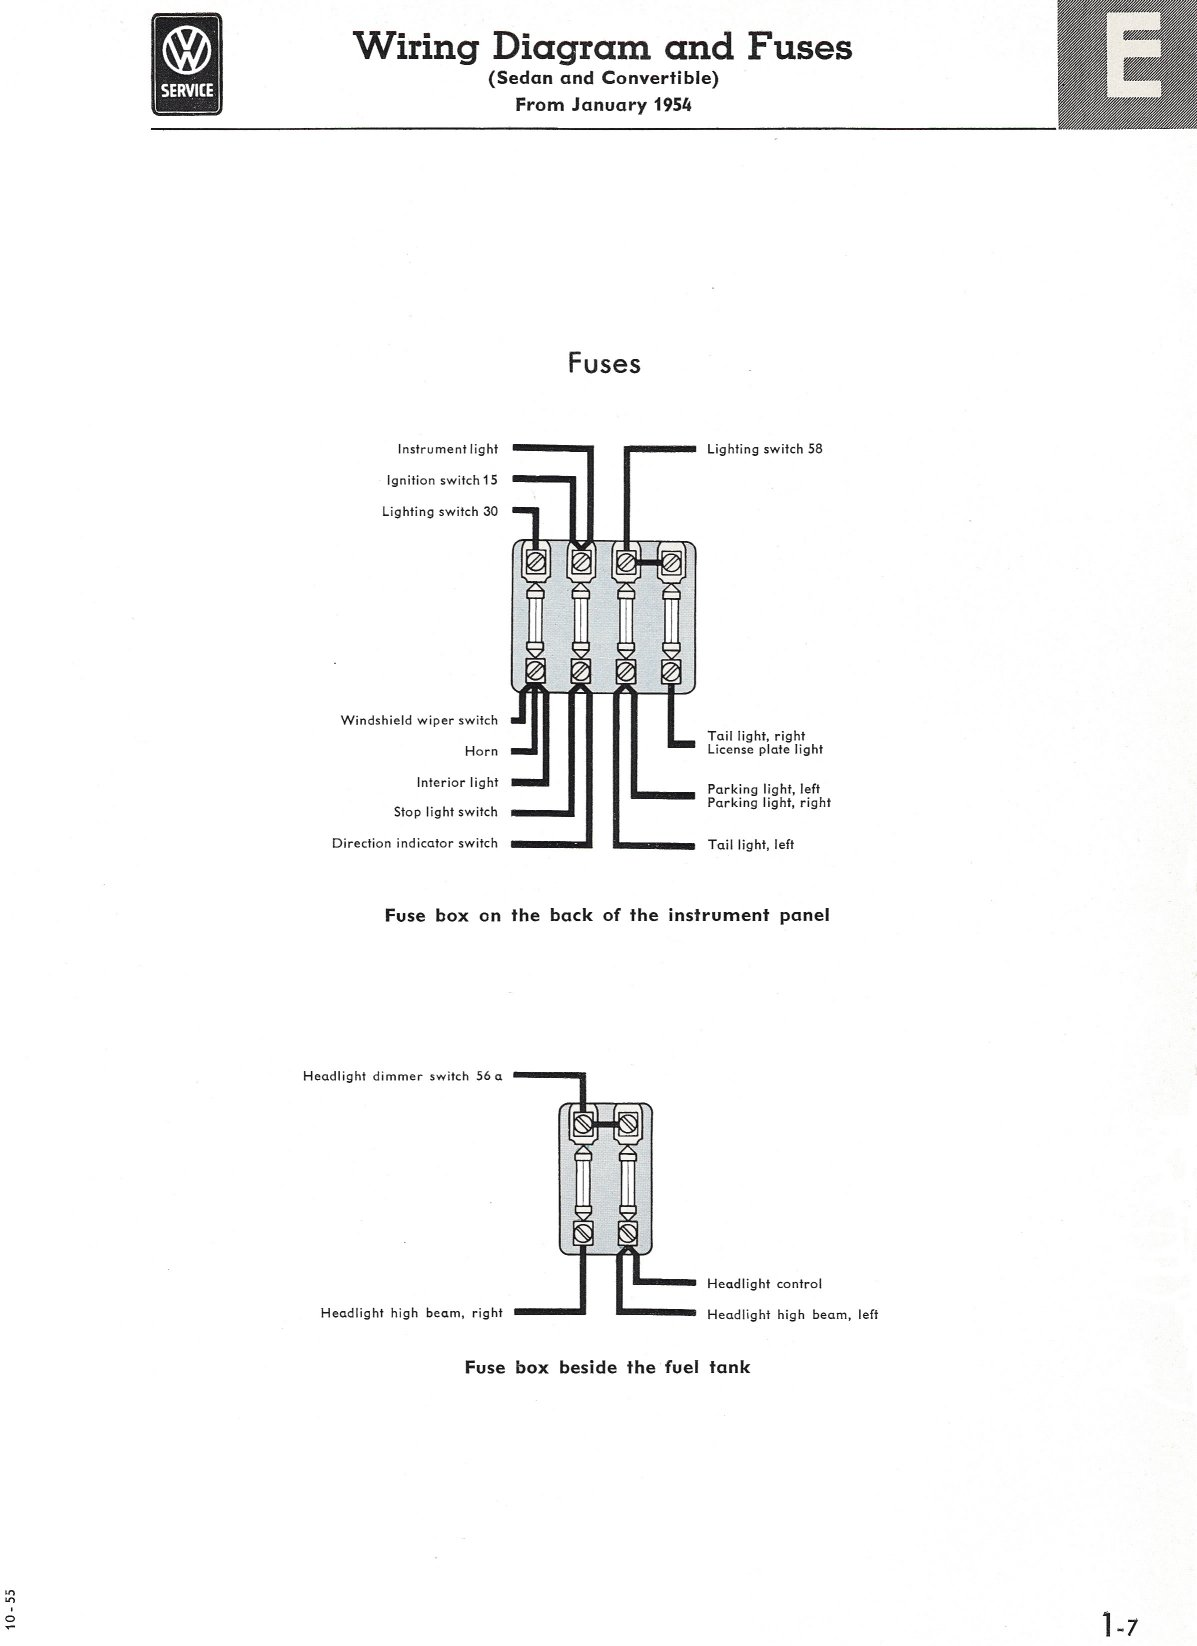 Vw Type 1 Wiring Diagram Wire Schematic 74 Charger Headlight Diagrams Thesamba Com 64 Volkswagen Bug Beetle